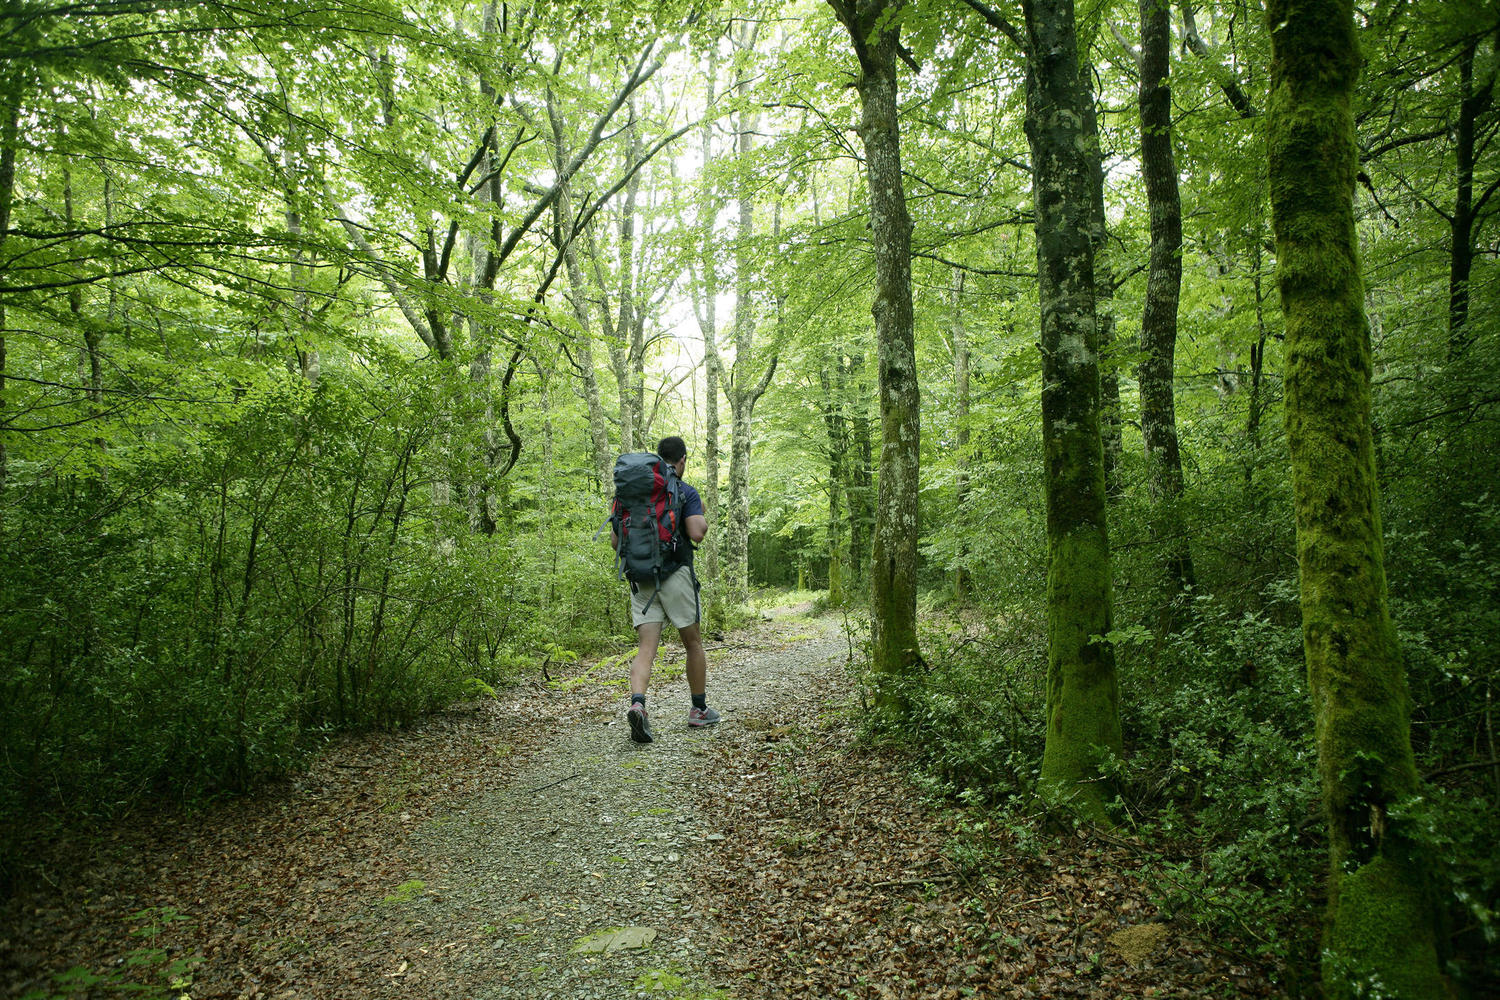 Hiking across the Jordá beech forest in Garrotxa natural park